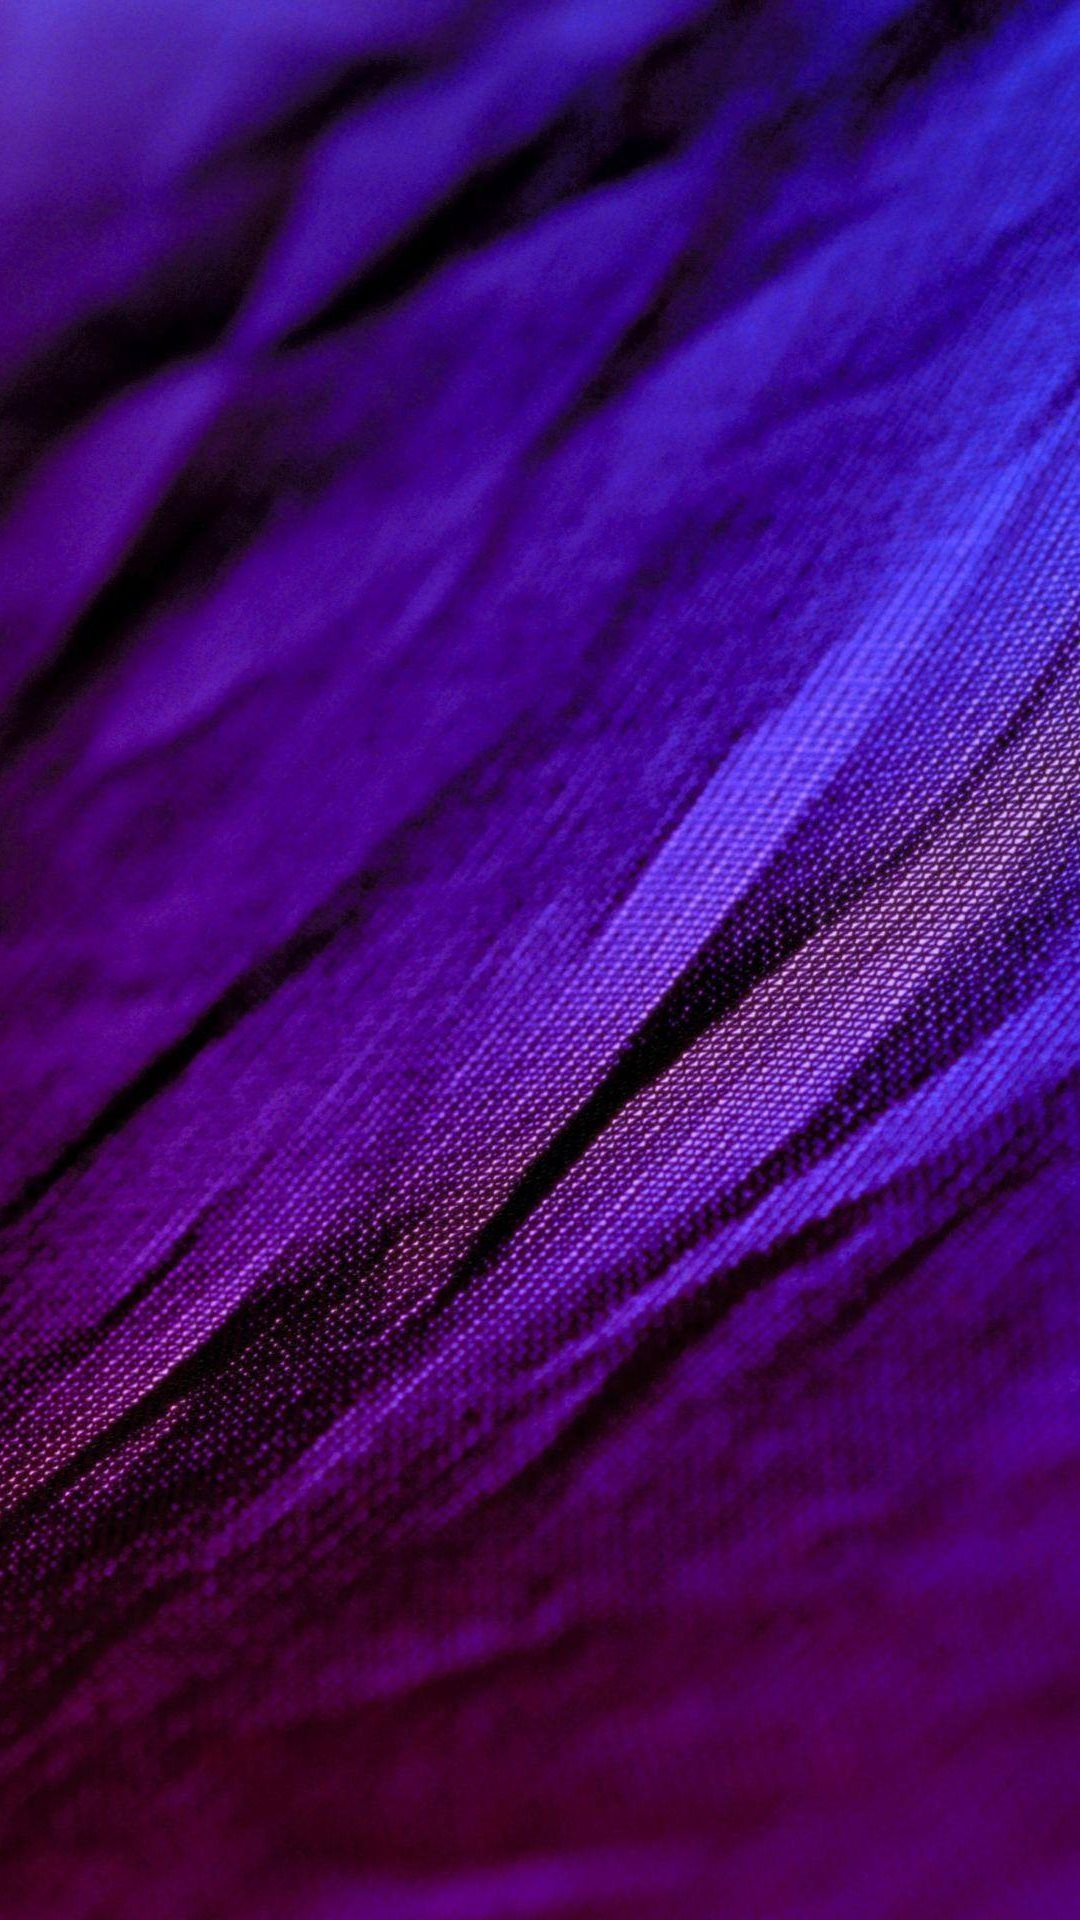 Wallpaper iphone violet - 75 Creative Textures Iphone Wallpapers Free To Download